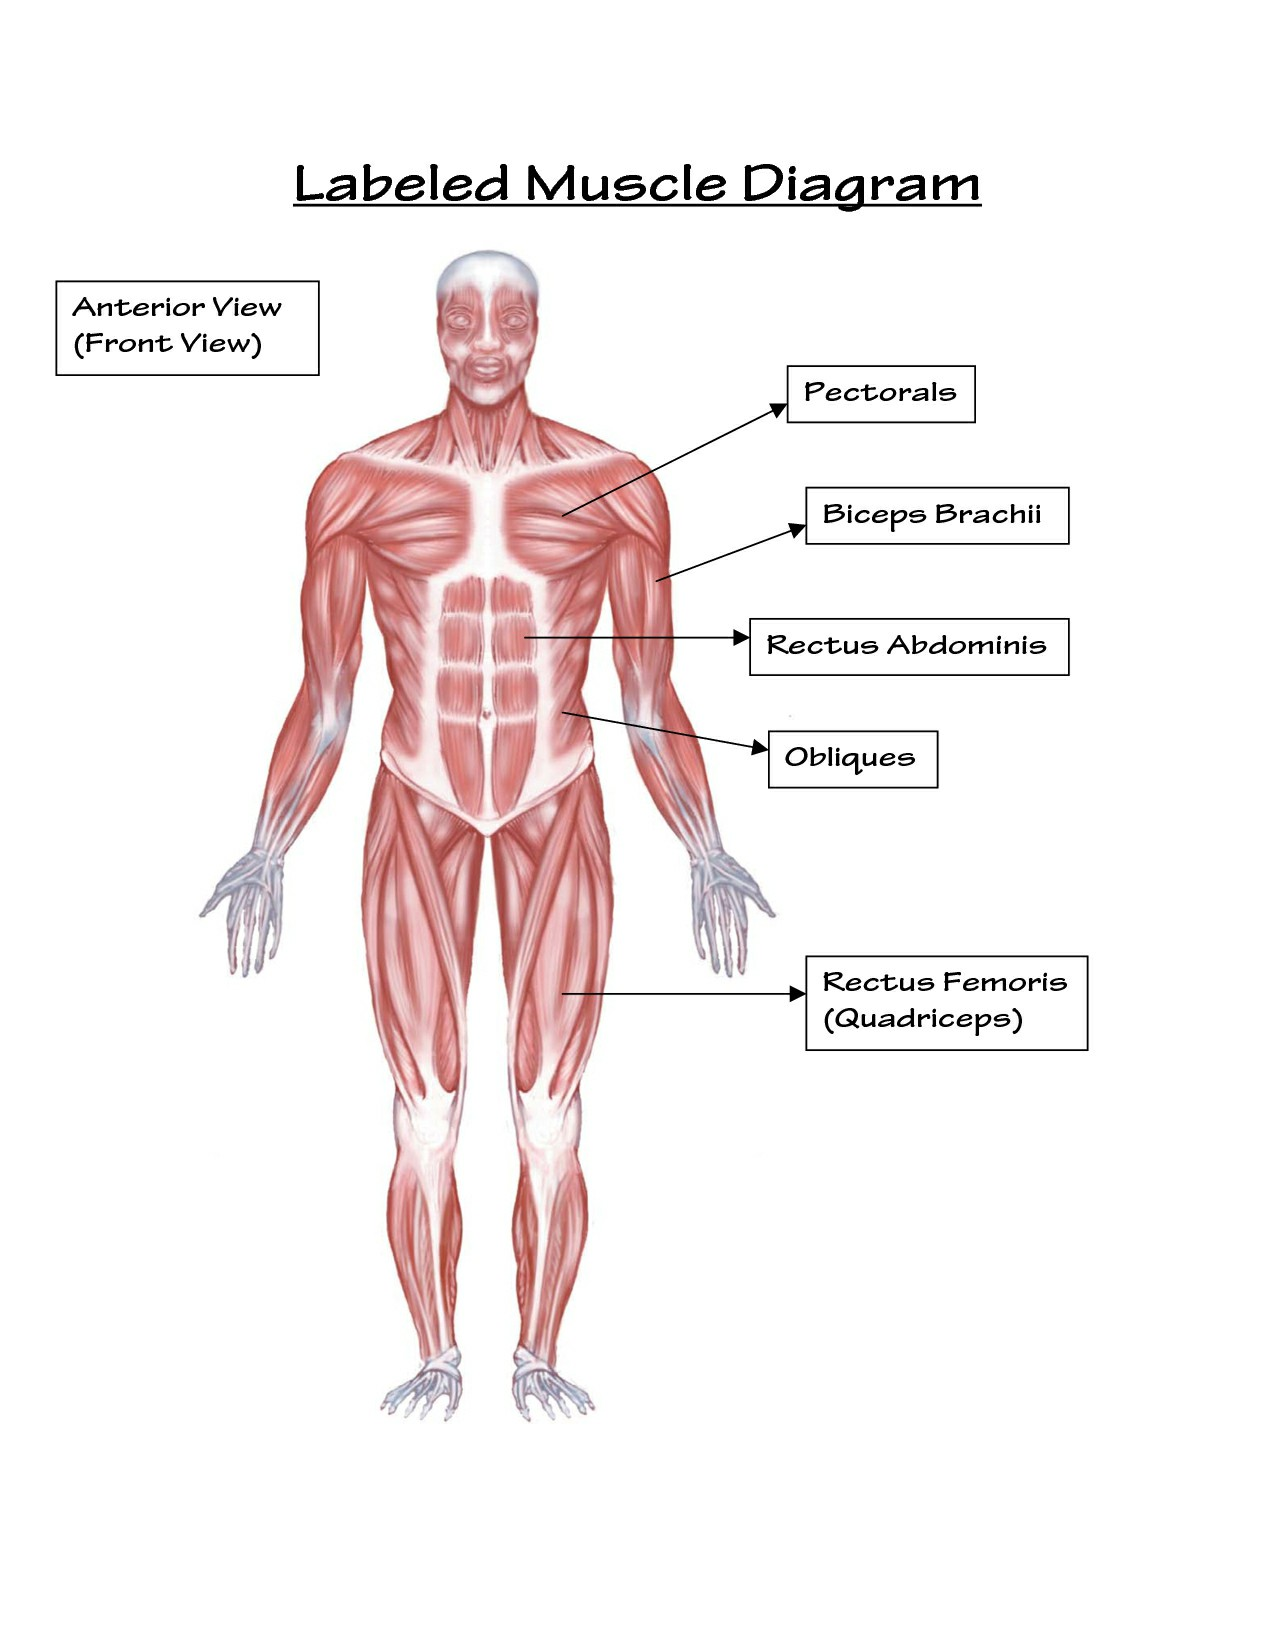 Labeled Body Muscle Diagram Simple Labeled Muscle Diagram Human Body | Diagram | Pinterest Pictures Wallpapers